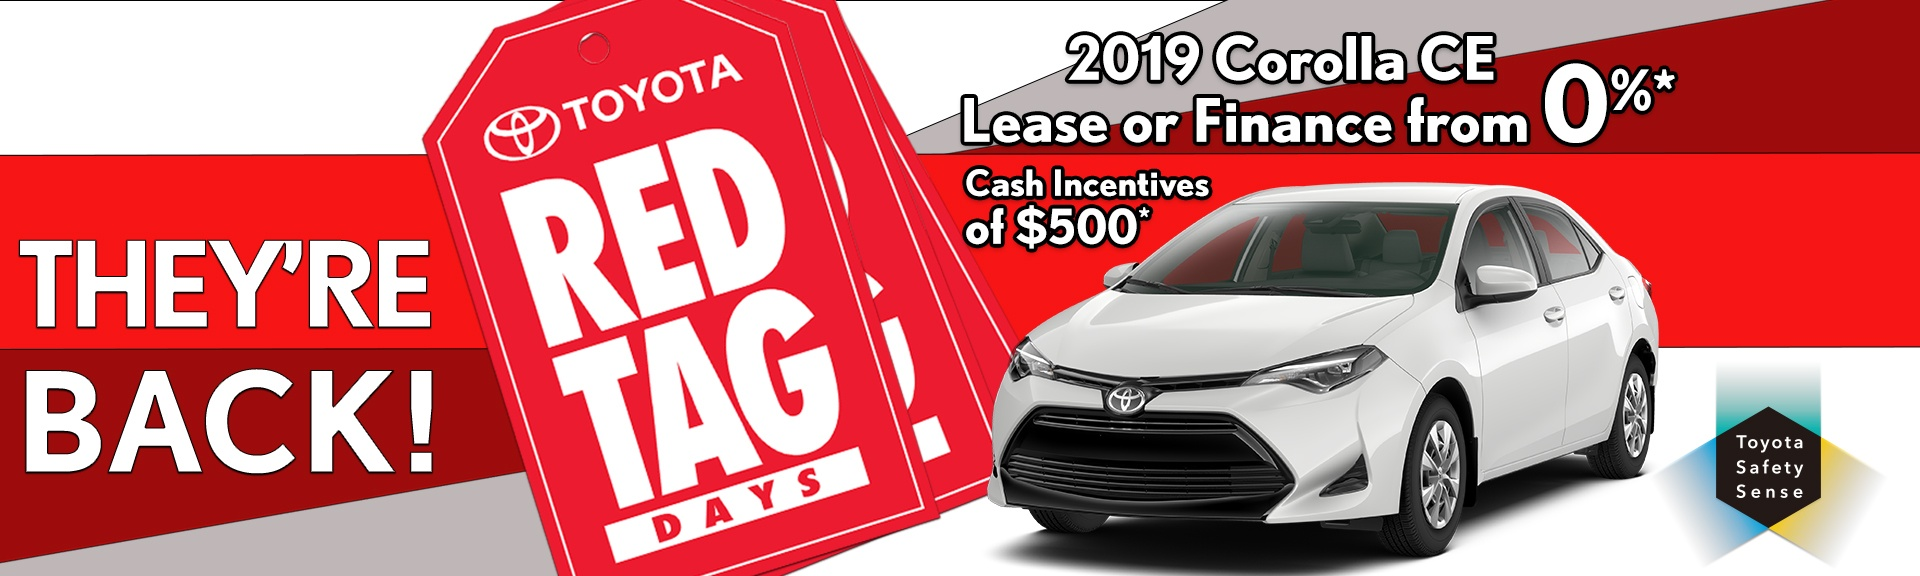 Red Tag Days at Heffner Toyota.